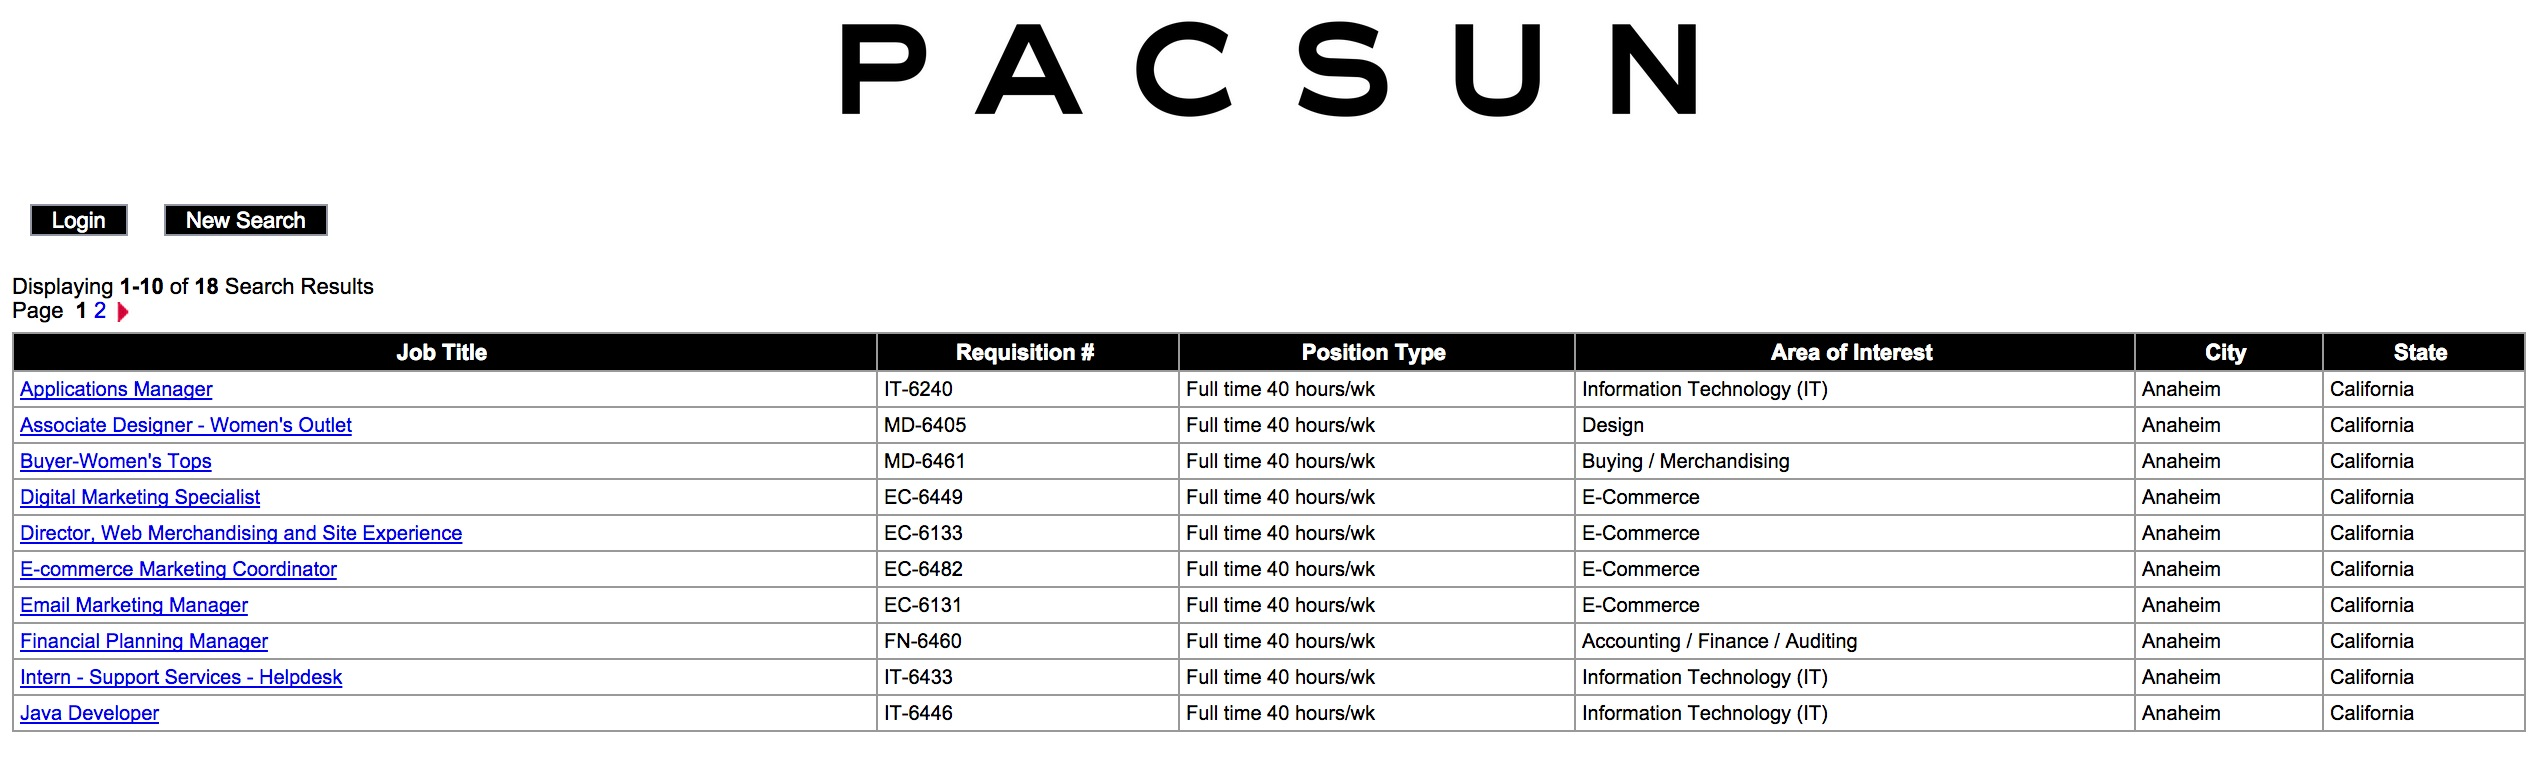 pacsun job application pdf Download PacSun Job Application Form | PDF Template wikiDownload